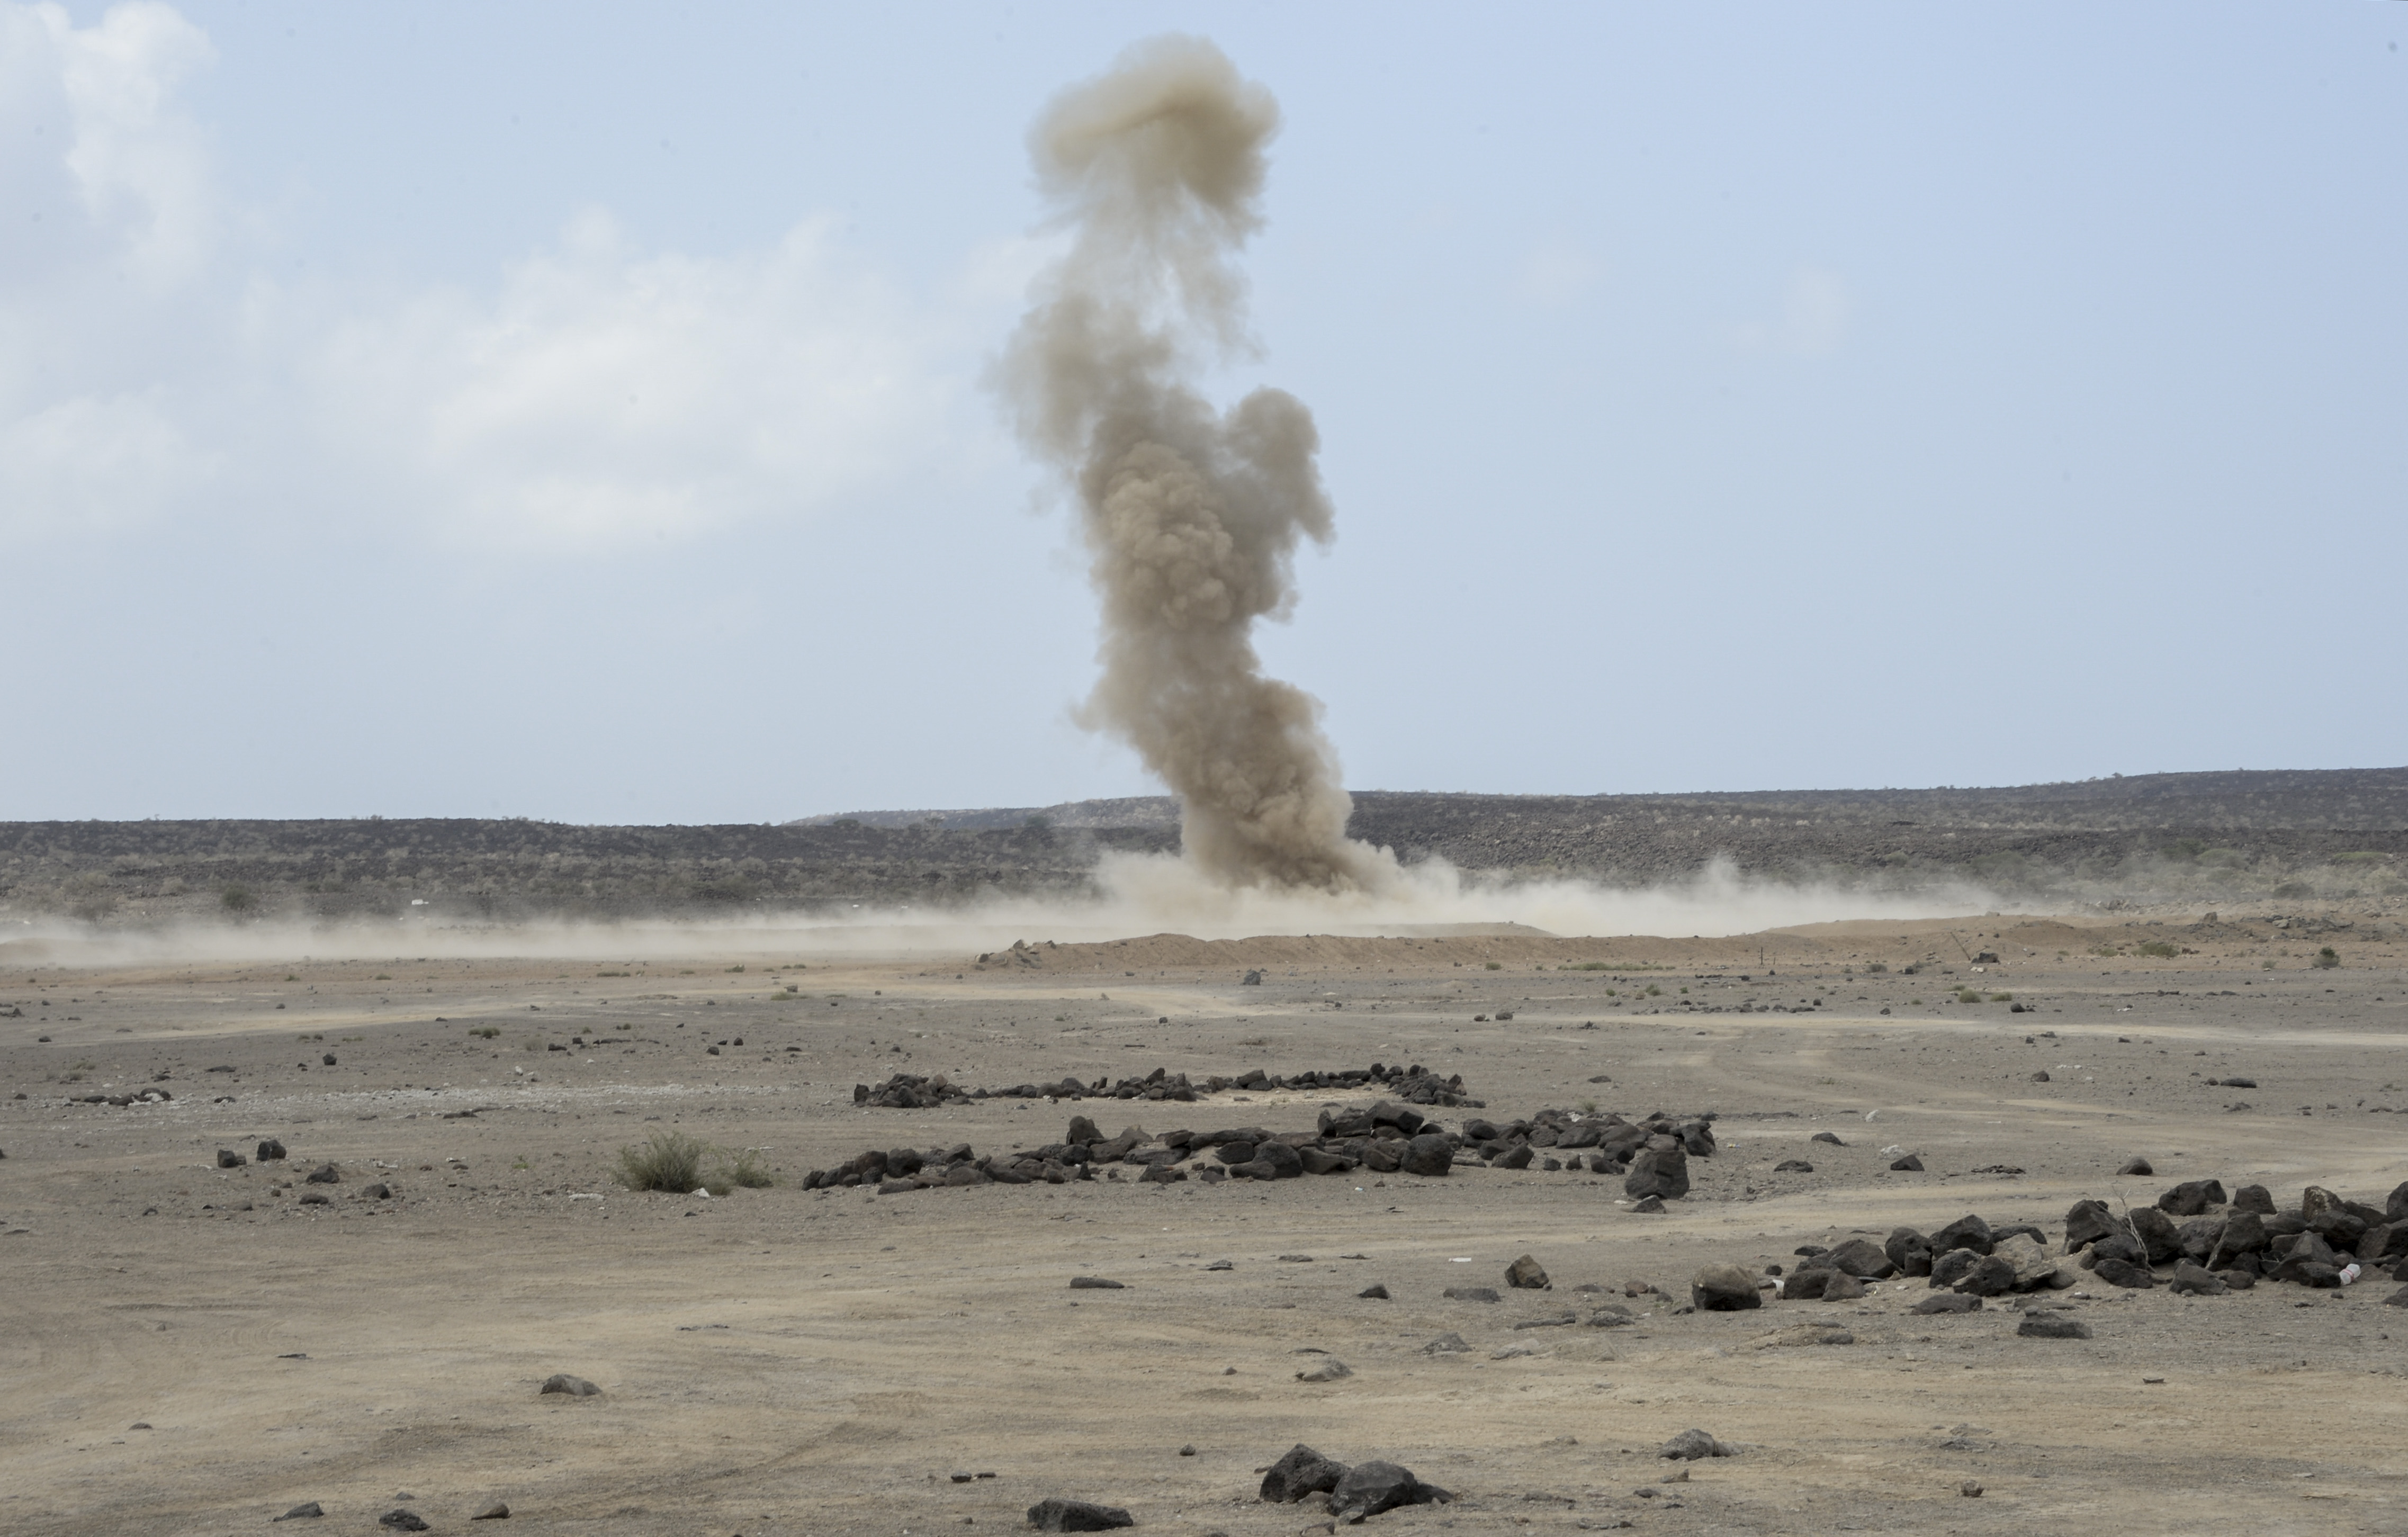 U.S. Navy Sailors of Combined Joint Task Force Horn of Africa (CJTF-HOA) Explosive Ordinance Disposal (EOD) members, performs a controlled detonation with an explosive devices during a training exercise at Arta Plage, Djibouti, Jan. 30, 2017. A controlled detonation is a method used to safely disable suspected explosive devices. (U.S. Air National Guard photo by Staff Sgt. Christian Jadot)